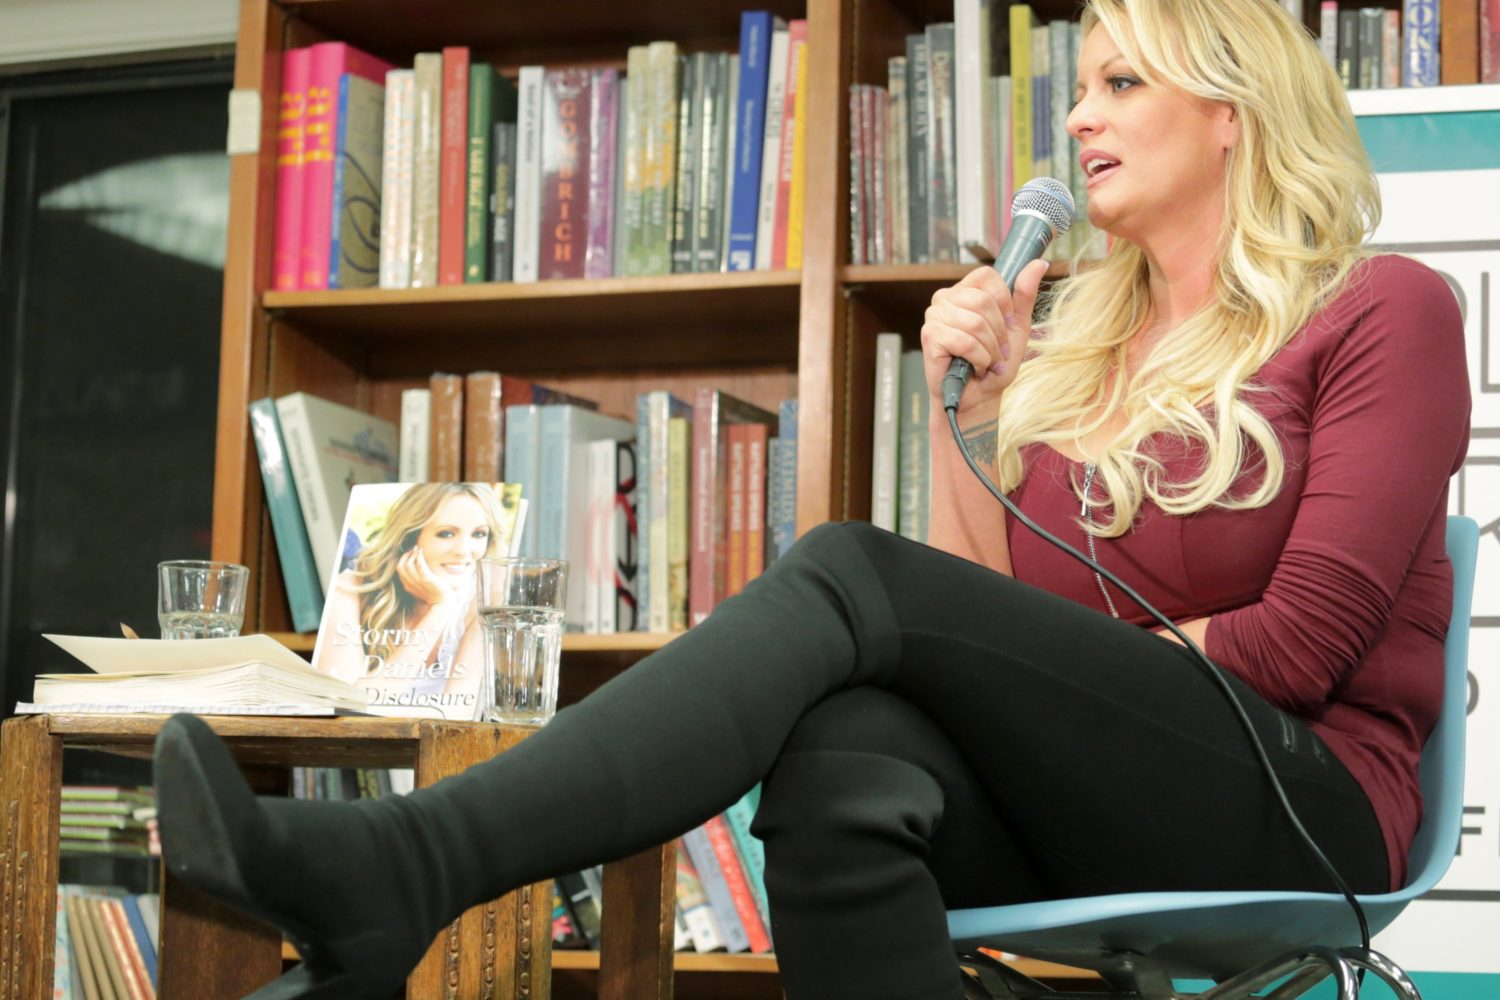 Stormy Daniels Will Speak at the Wing on Tuesday